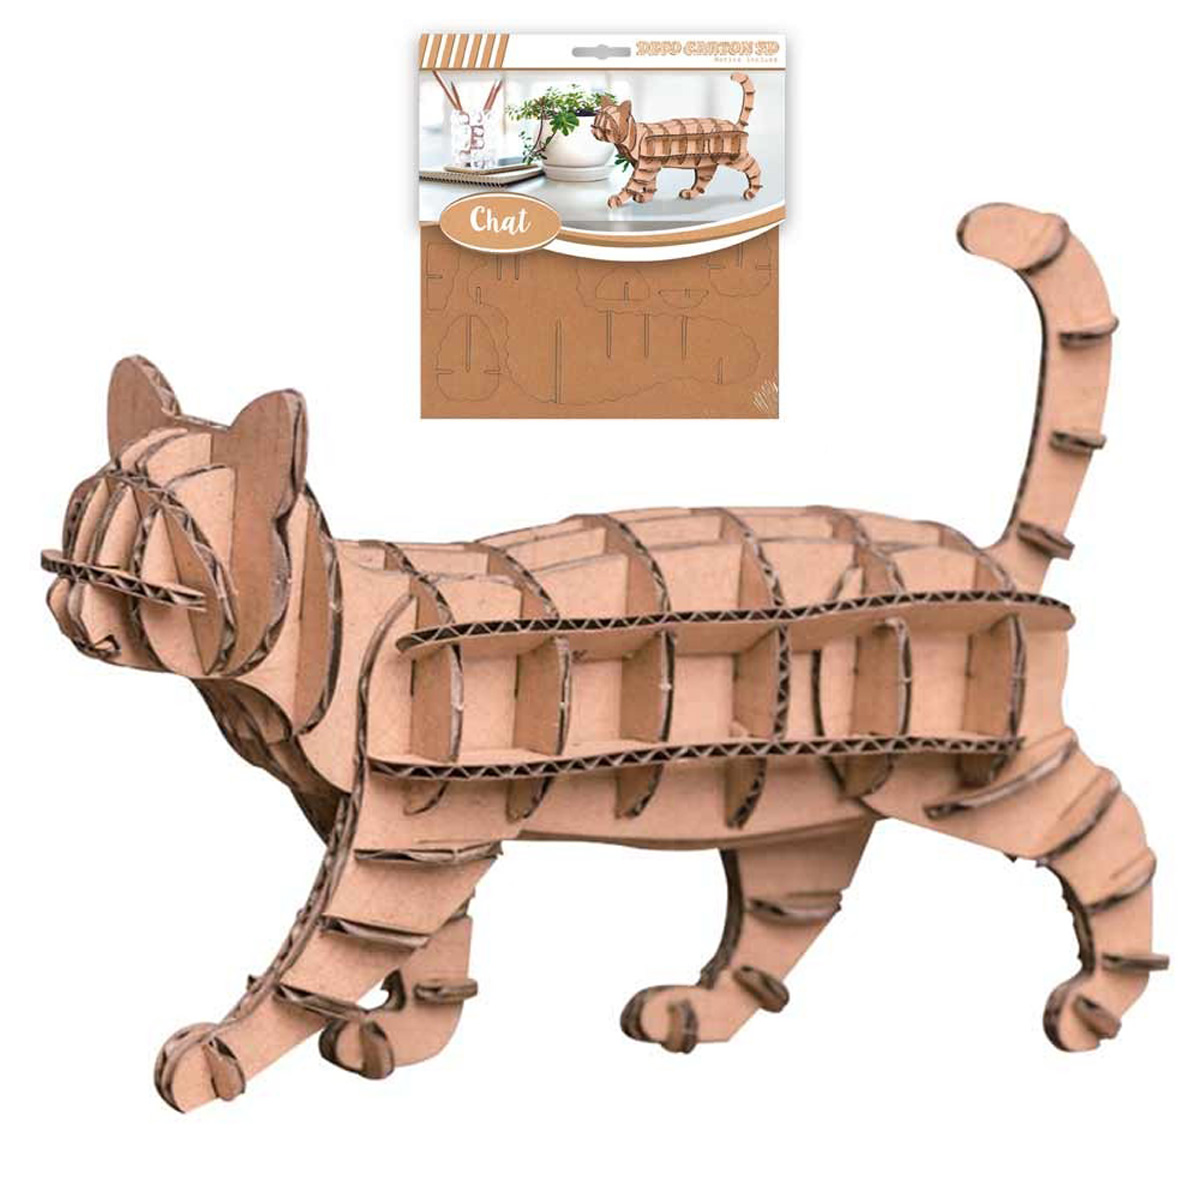 Figurine carton 3D \'Chat\' - planches 165x175 cm - [Q4561]